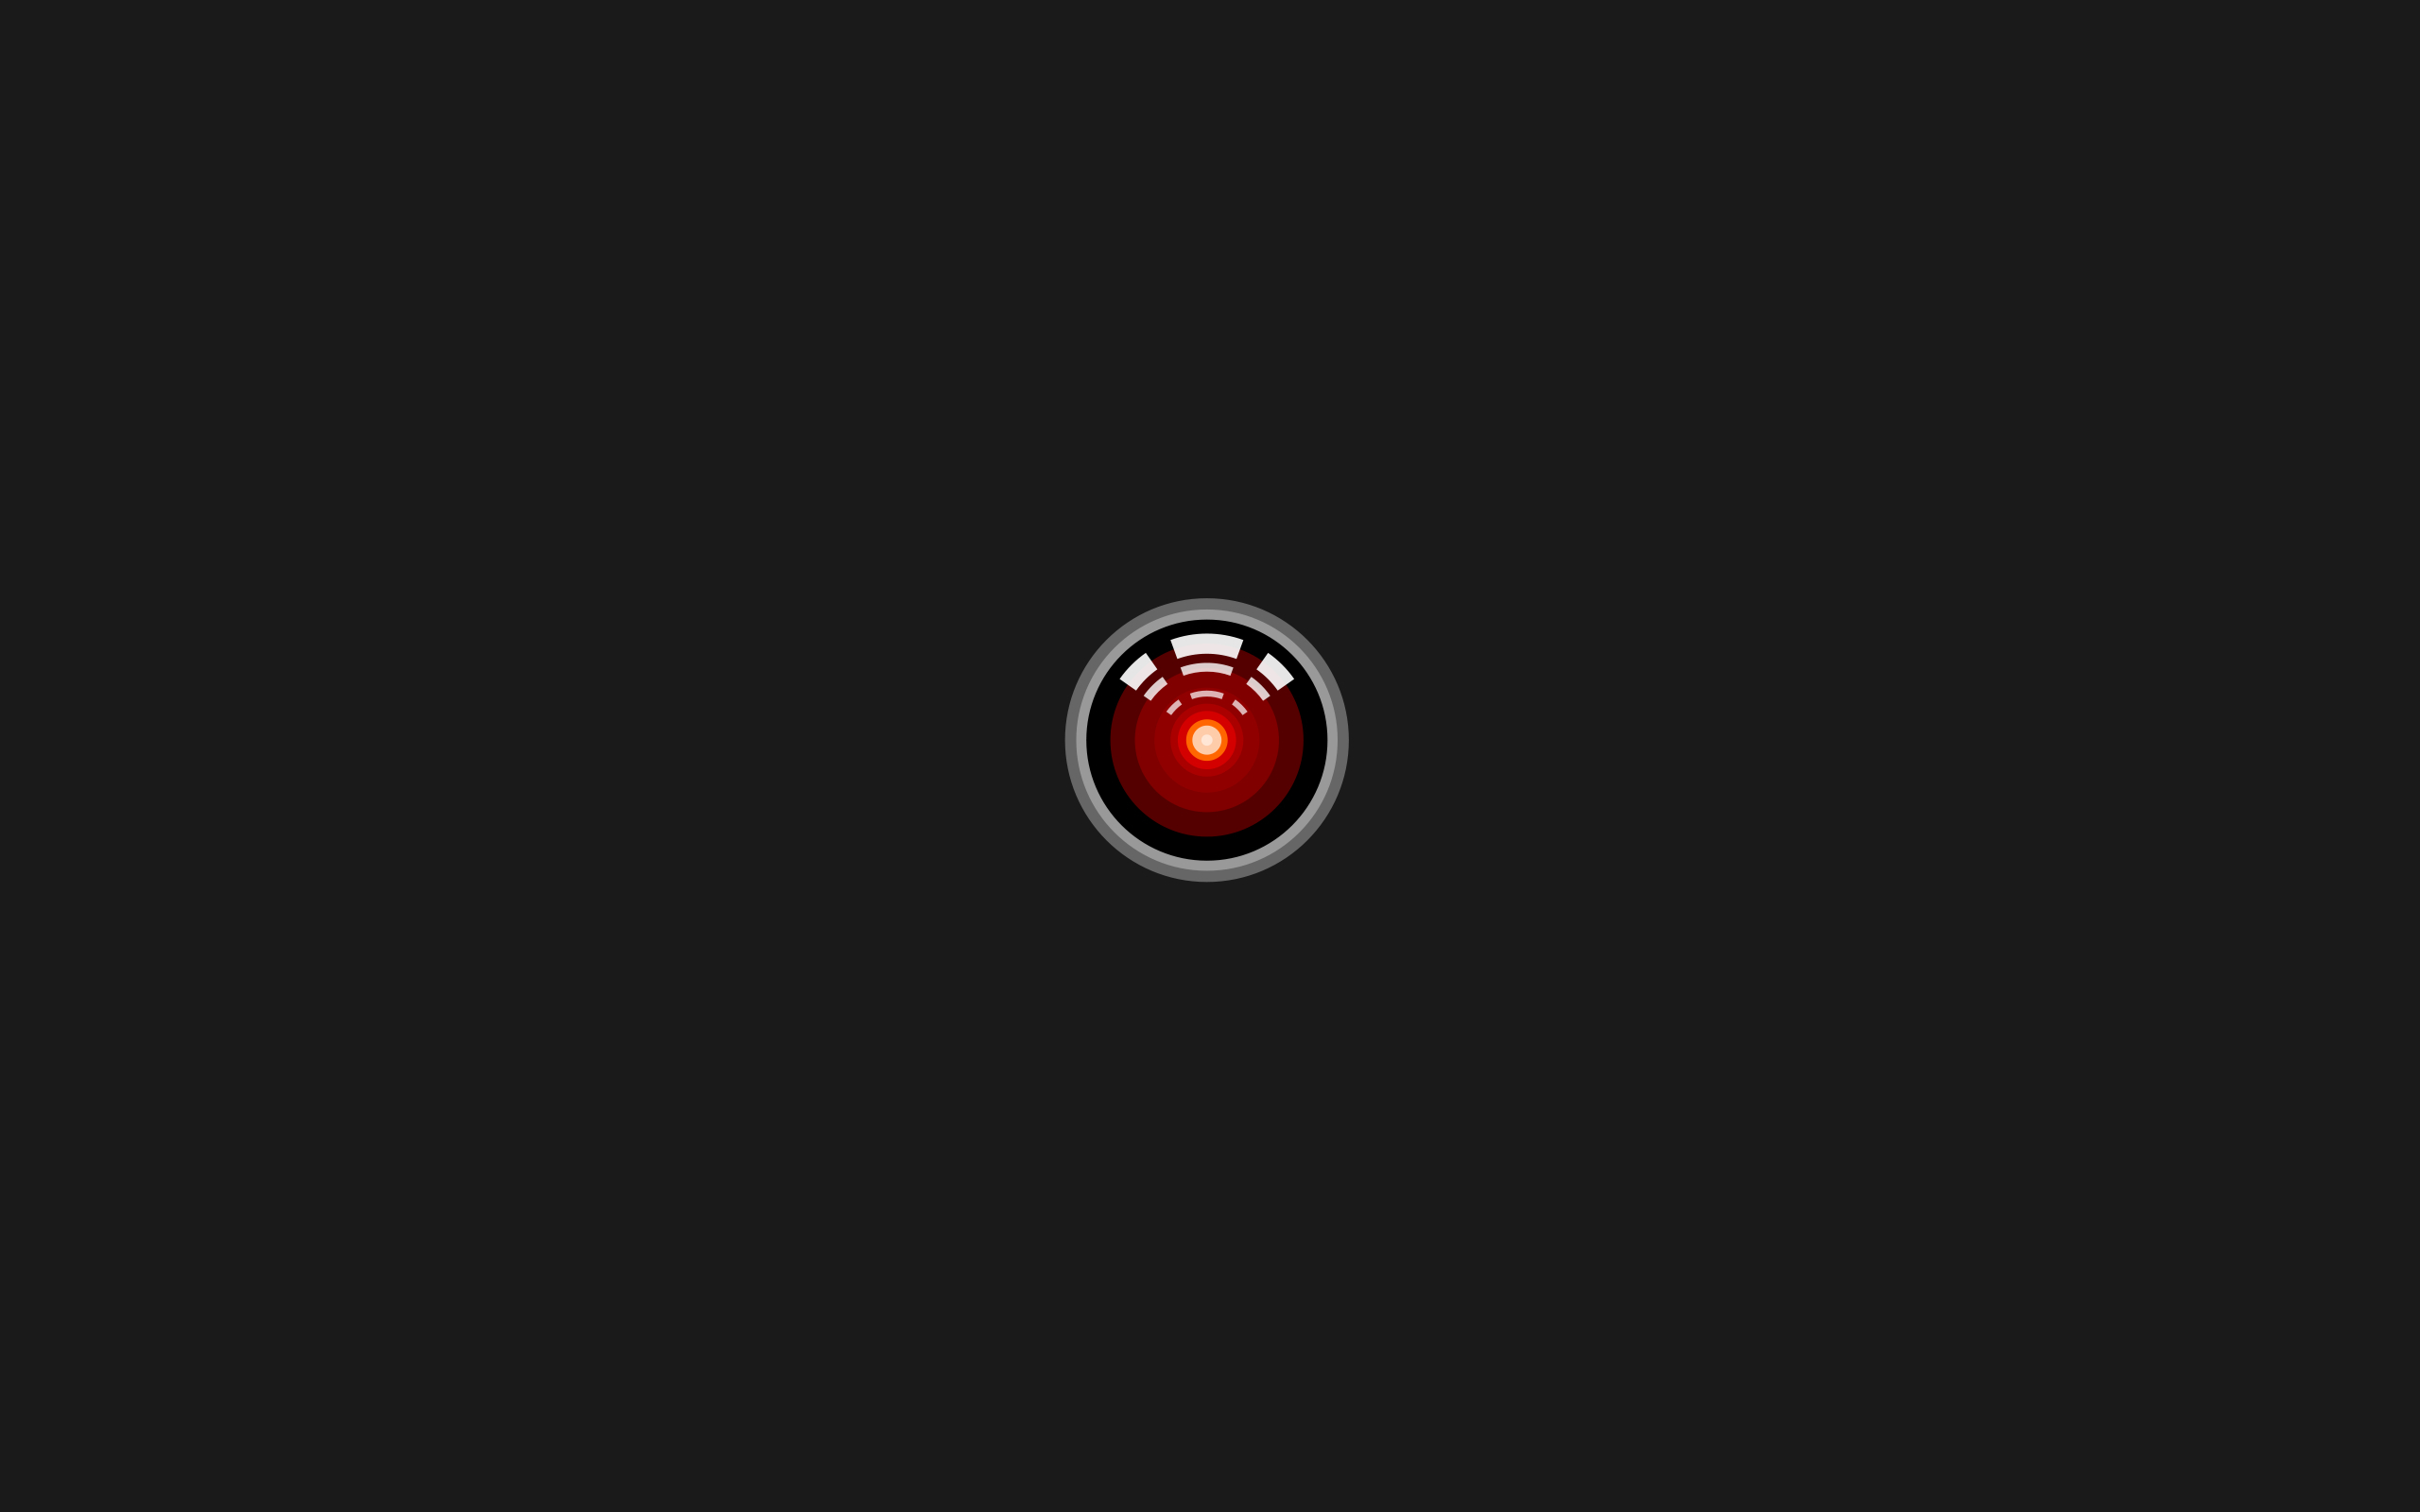 Movies 2001 Space Odyssey HD Wallpaper